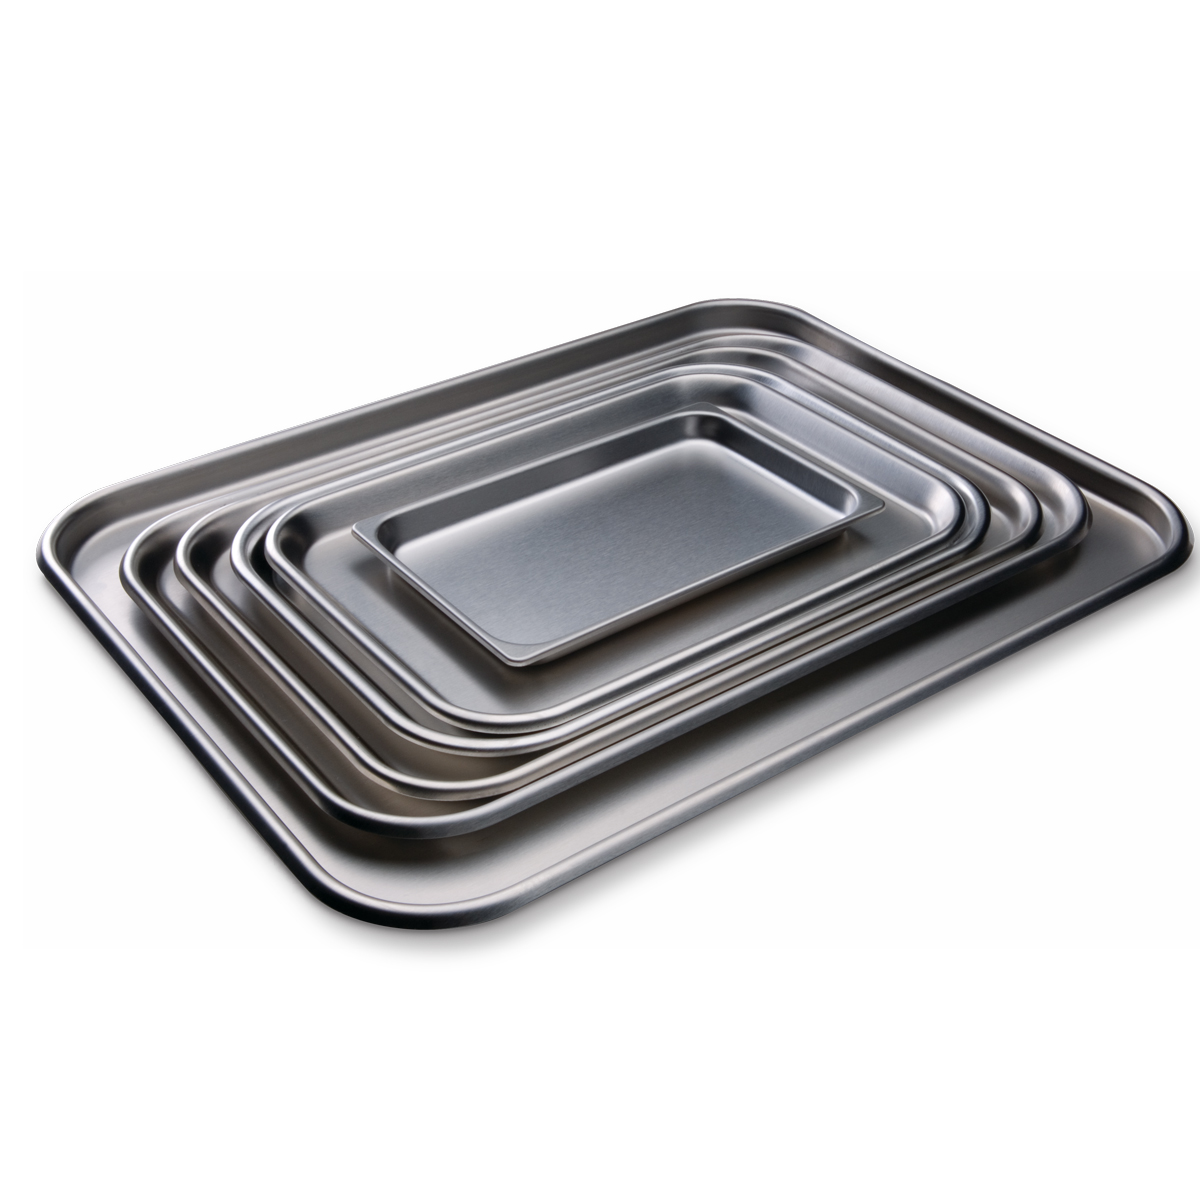 Oblong Instrument Tray Image